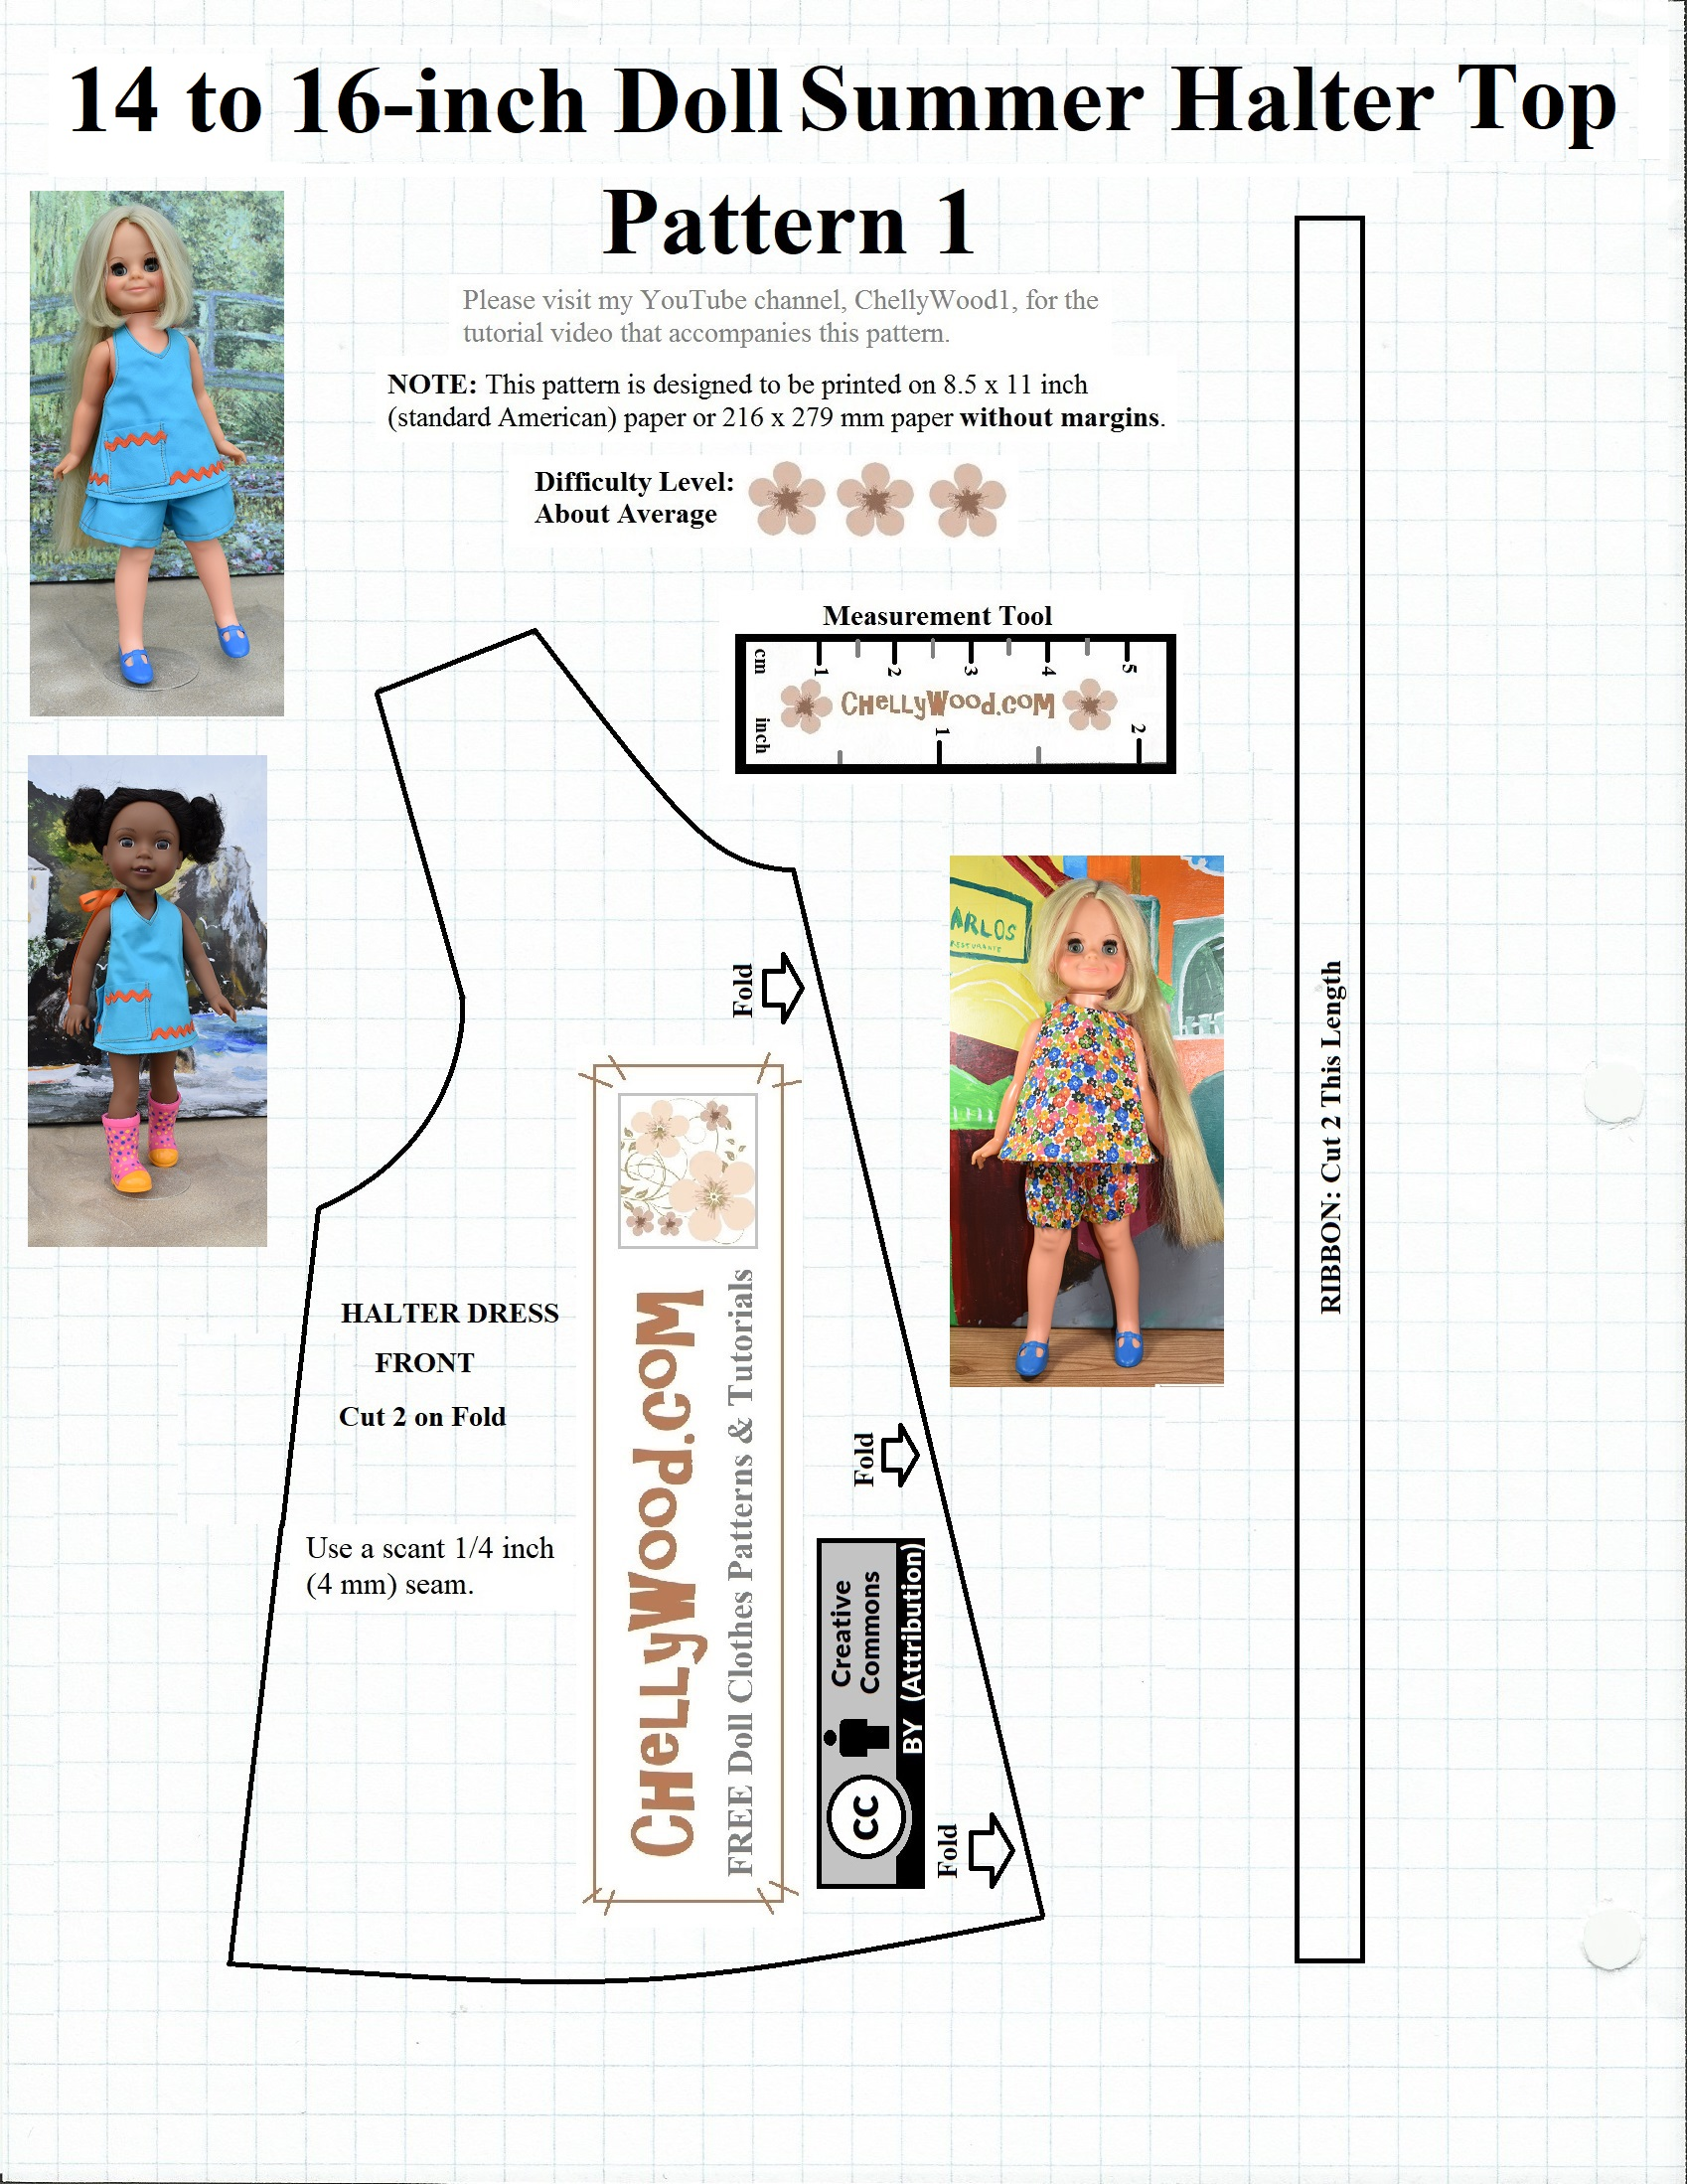 picture about Printable Sewing Patterns titled Totally free Printable #Sewing Models for #HeartsForHearts #Dolls